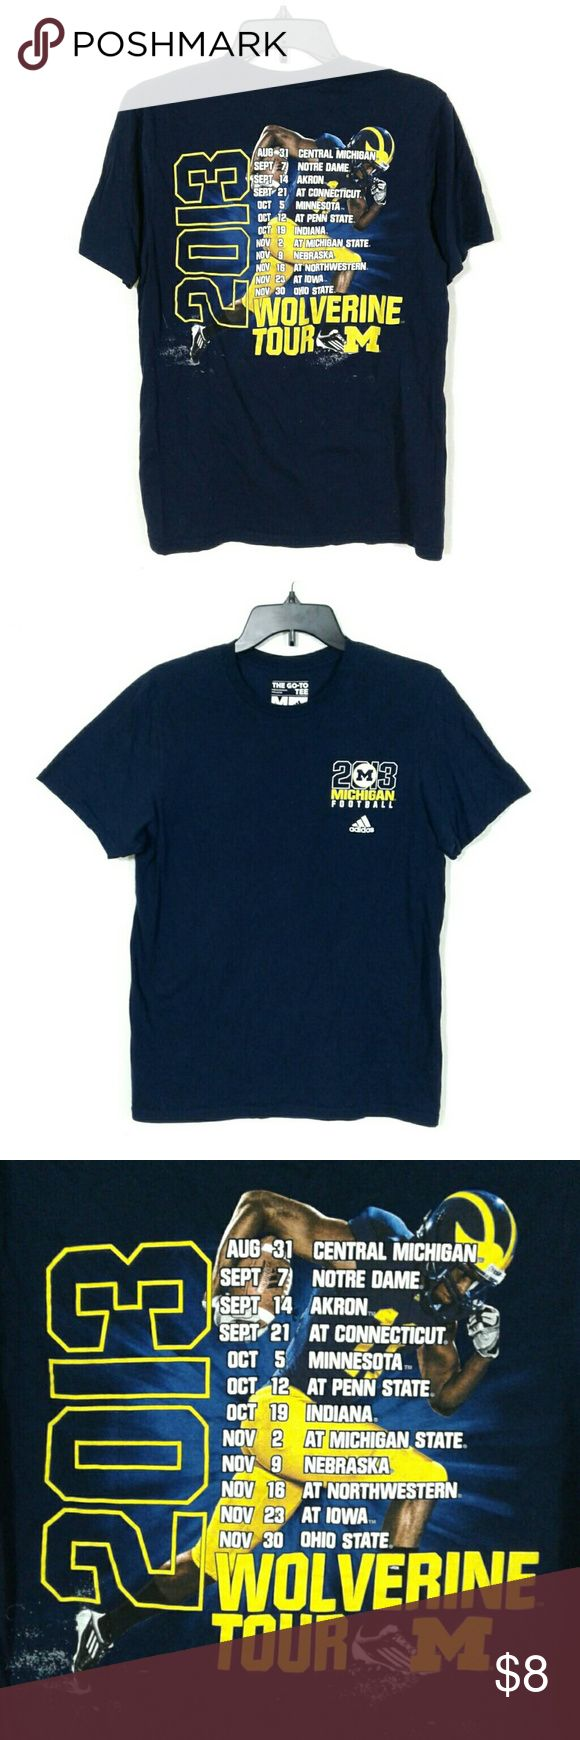 """U of Michigan Wolverines football t-shirt Offers are Awesome!  Bundles make it Better!  University of Michigan Wolverines football t-shirt. Blue base with 2013 M Football and Adidss logo printed in white on front left chest. Full rear print of player with season game schedule. 100% cotton. Printed on Adidas GoTo tee. Very good condition without flaws or signs of wear. Size medium. Measurements laid flat: Bust 19""""  Length 26"""" #michiganwolverines #letsgoblue #michiganfootball adidas Shirts…"""